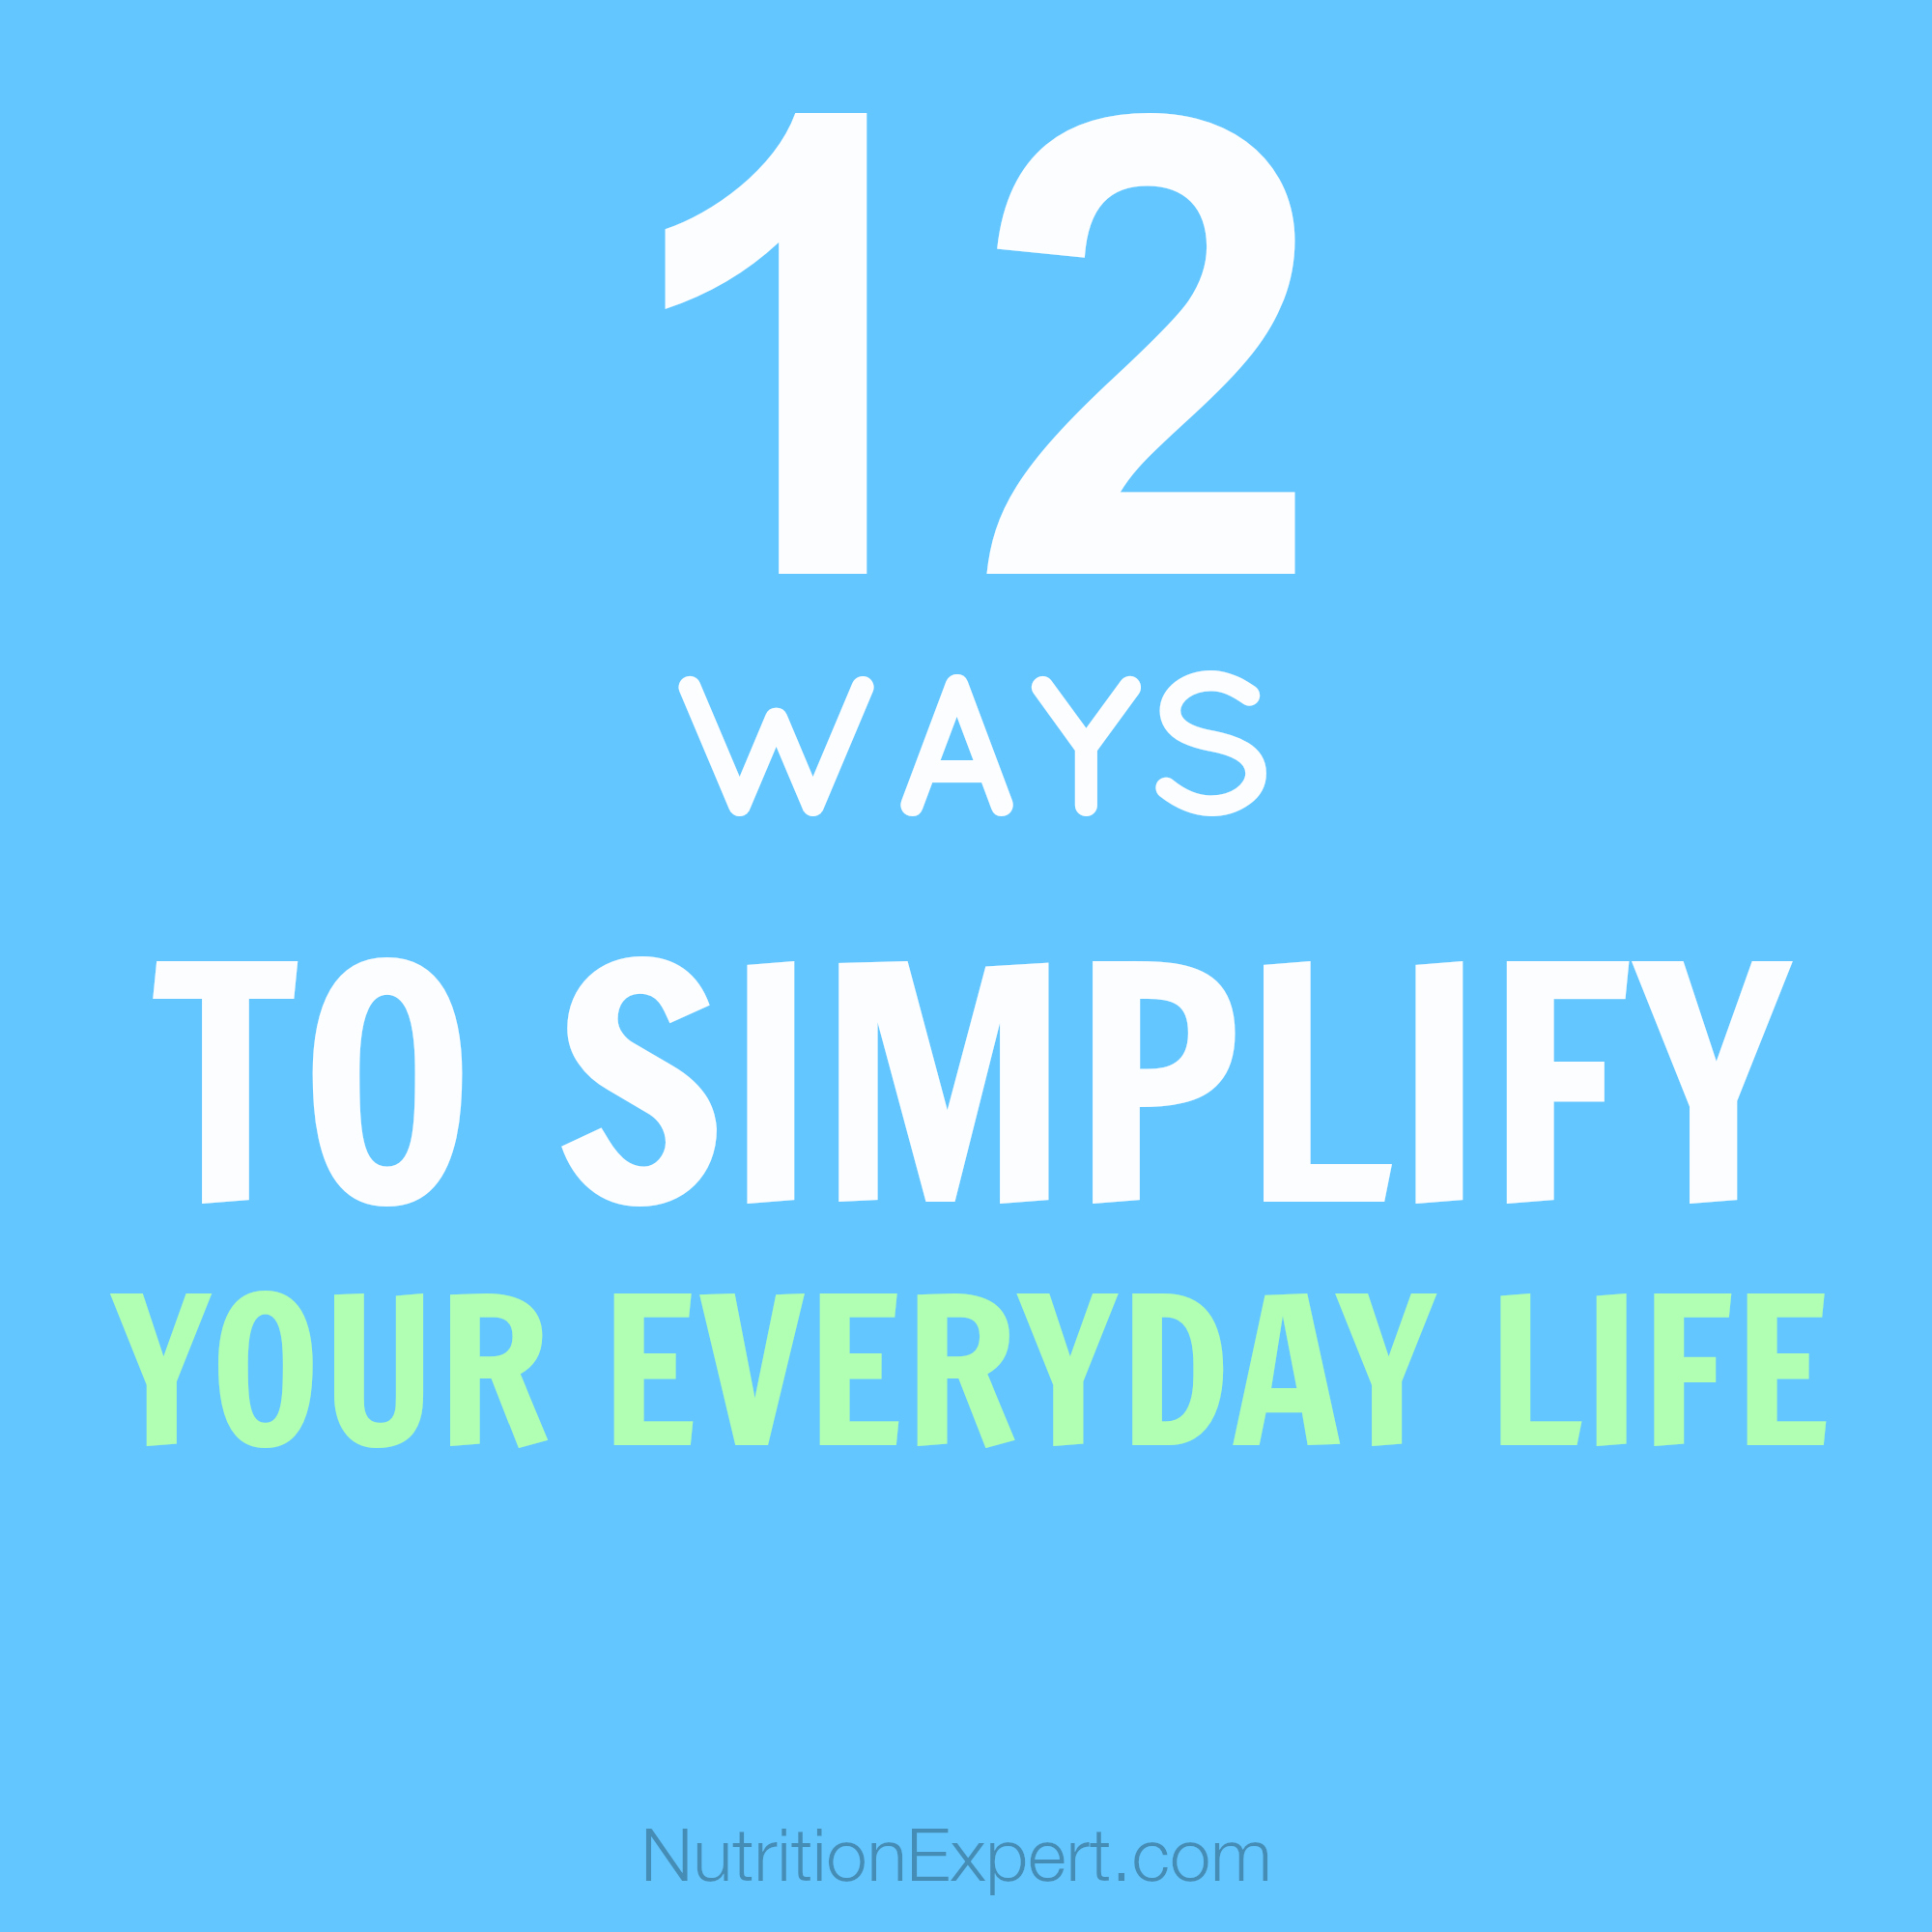 12 Ways to Simplify